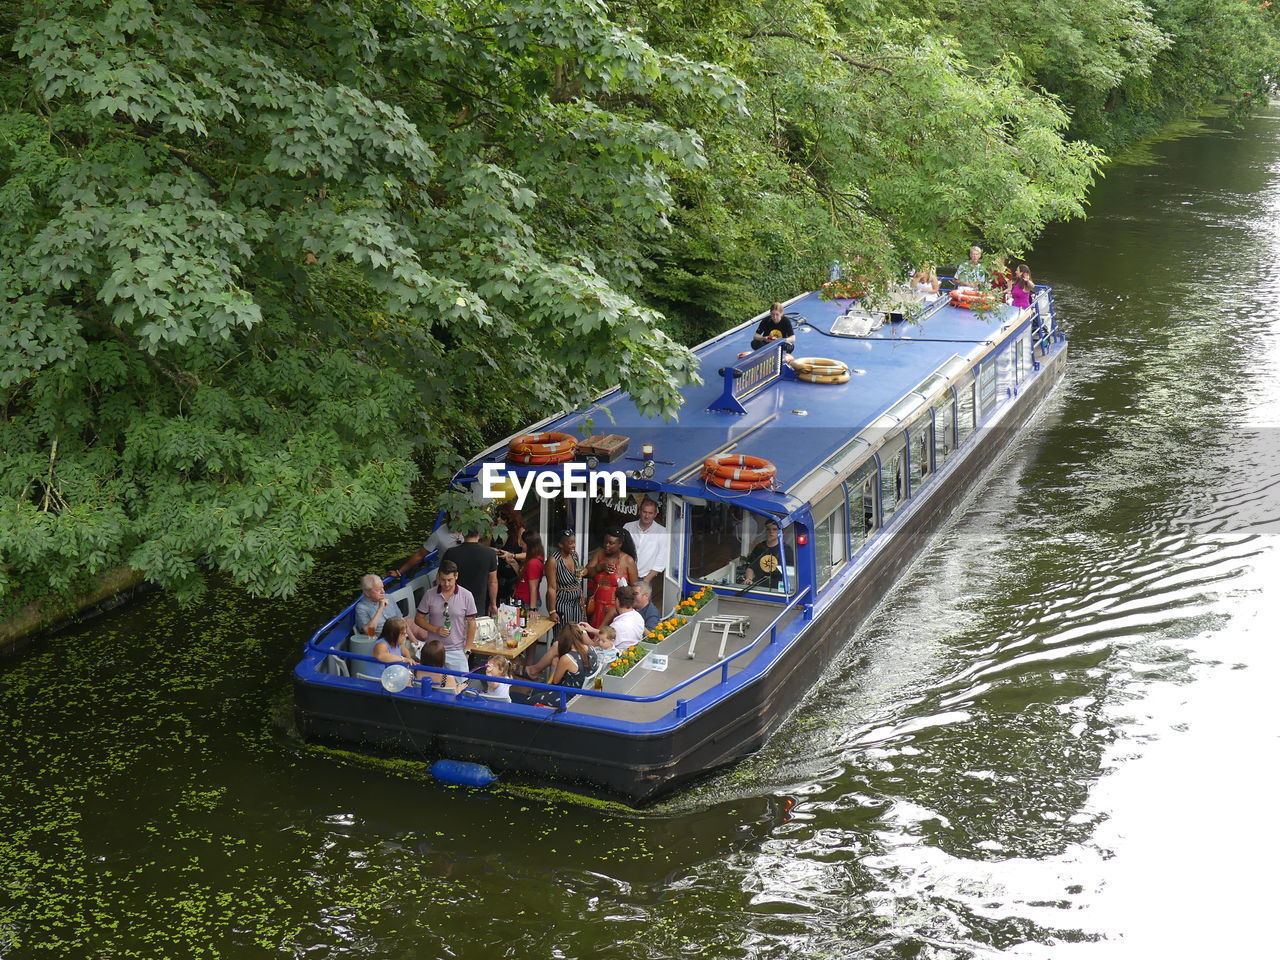 nautical vessel, water, transportation, group of people, tree, mode of transportation, plant, river, nature, day, crowd, large group of people, real people, waterfront, leisure activity, men, women, travel, outdoors, passenger craft, recreational boat